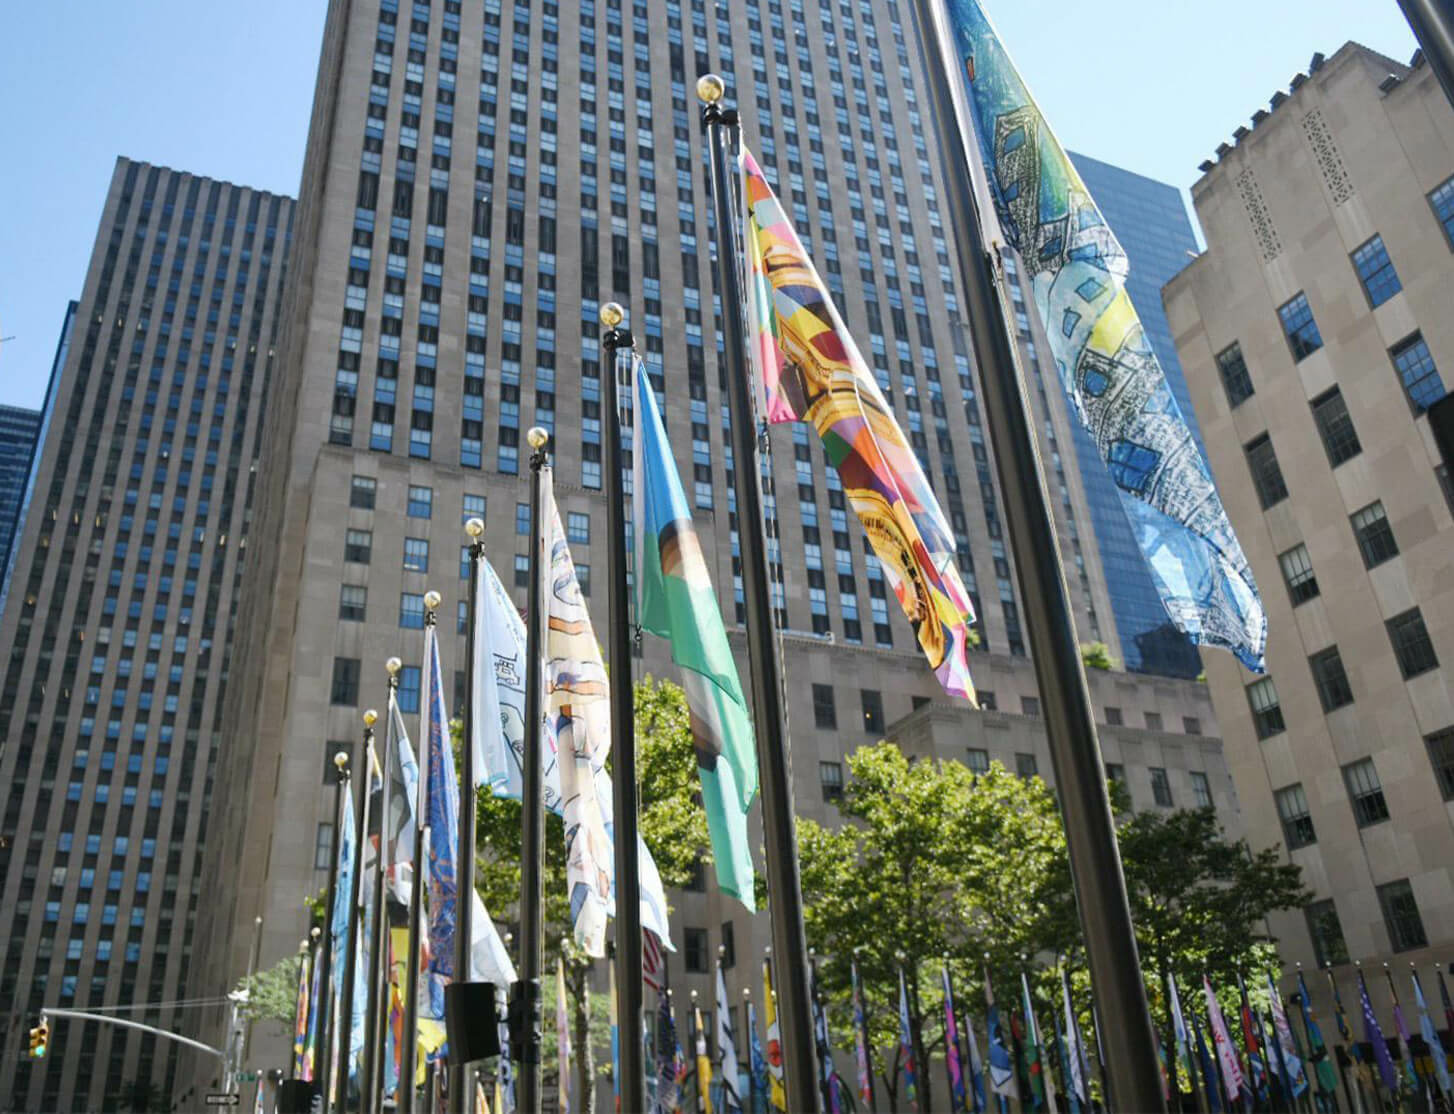 Marina Abramović and Carmen Herrera featured in The Flag Project at Rockefeller Center